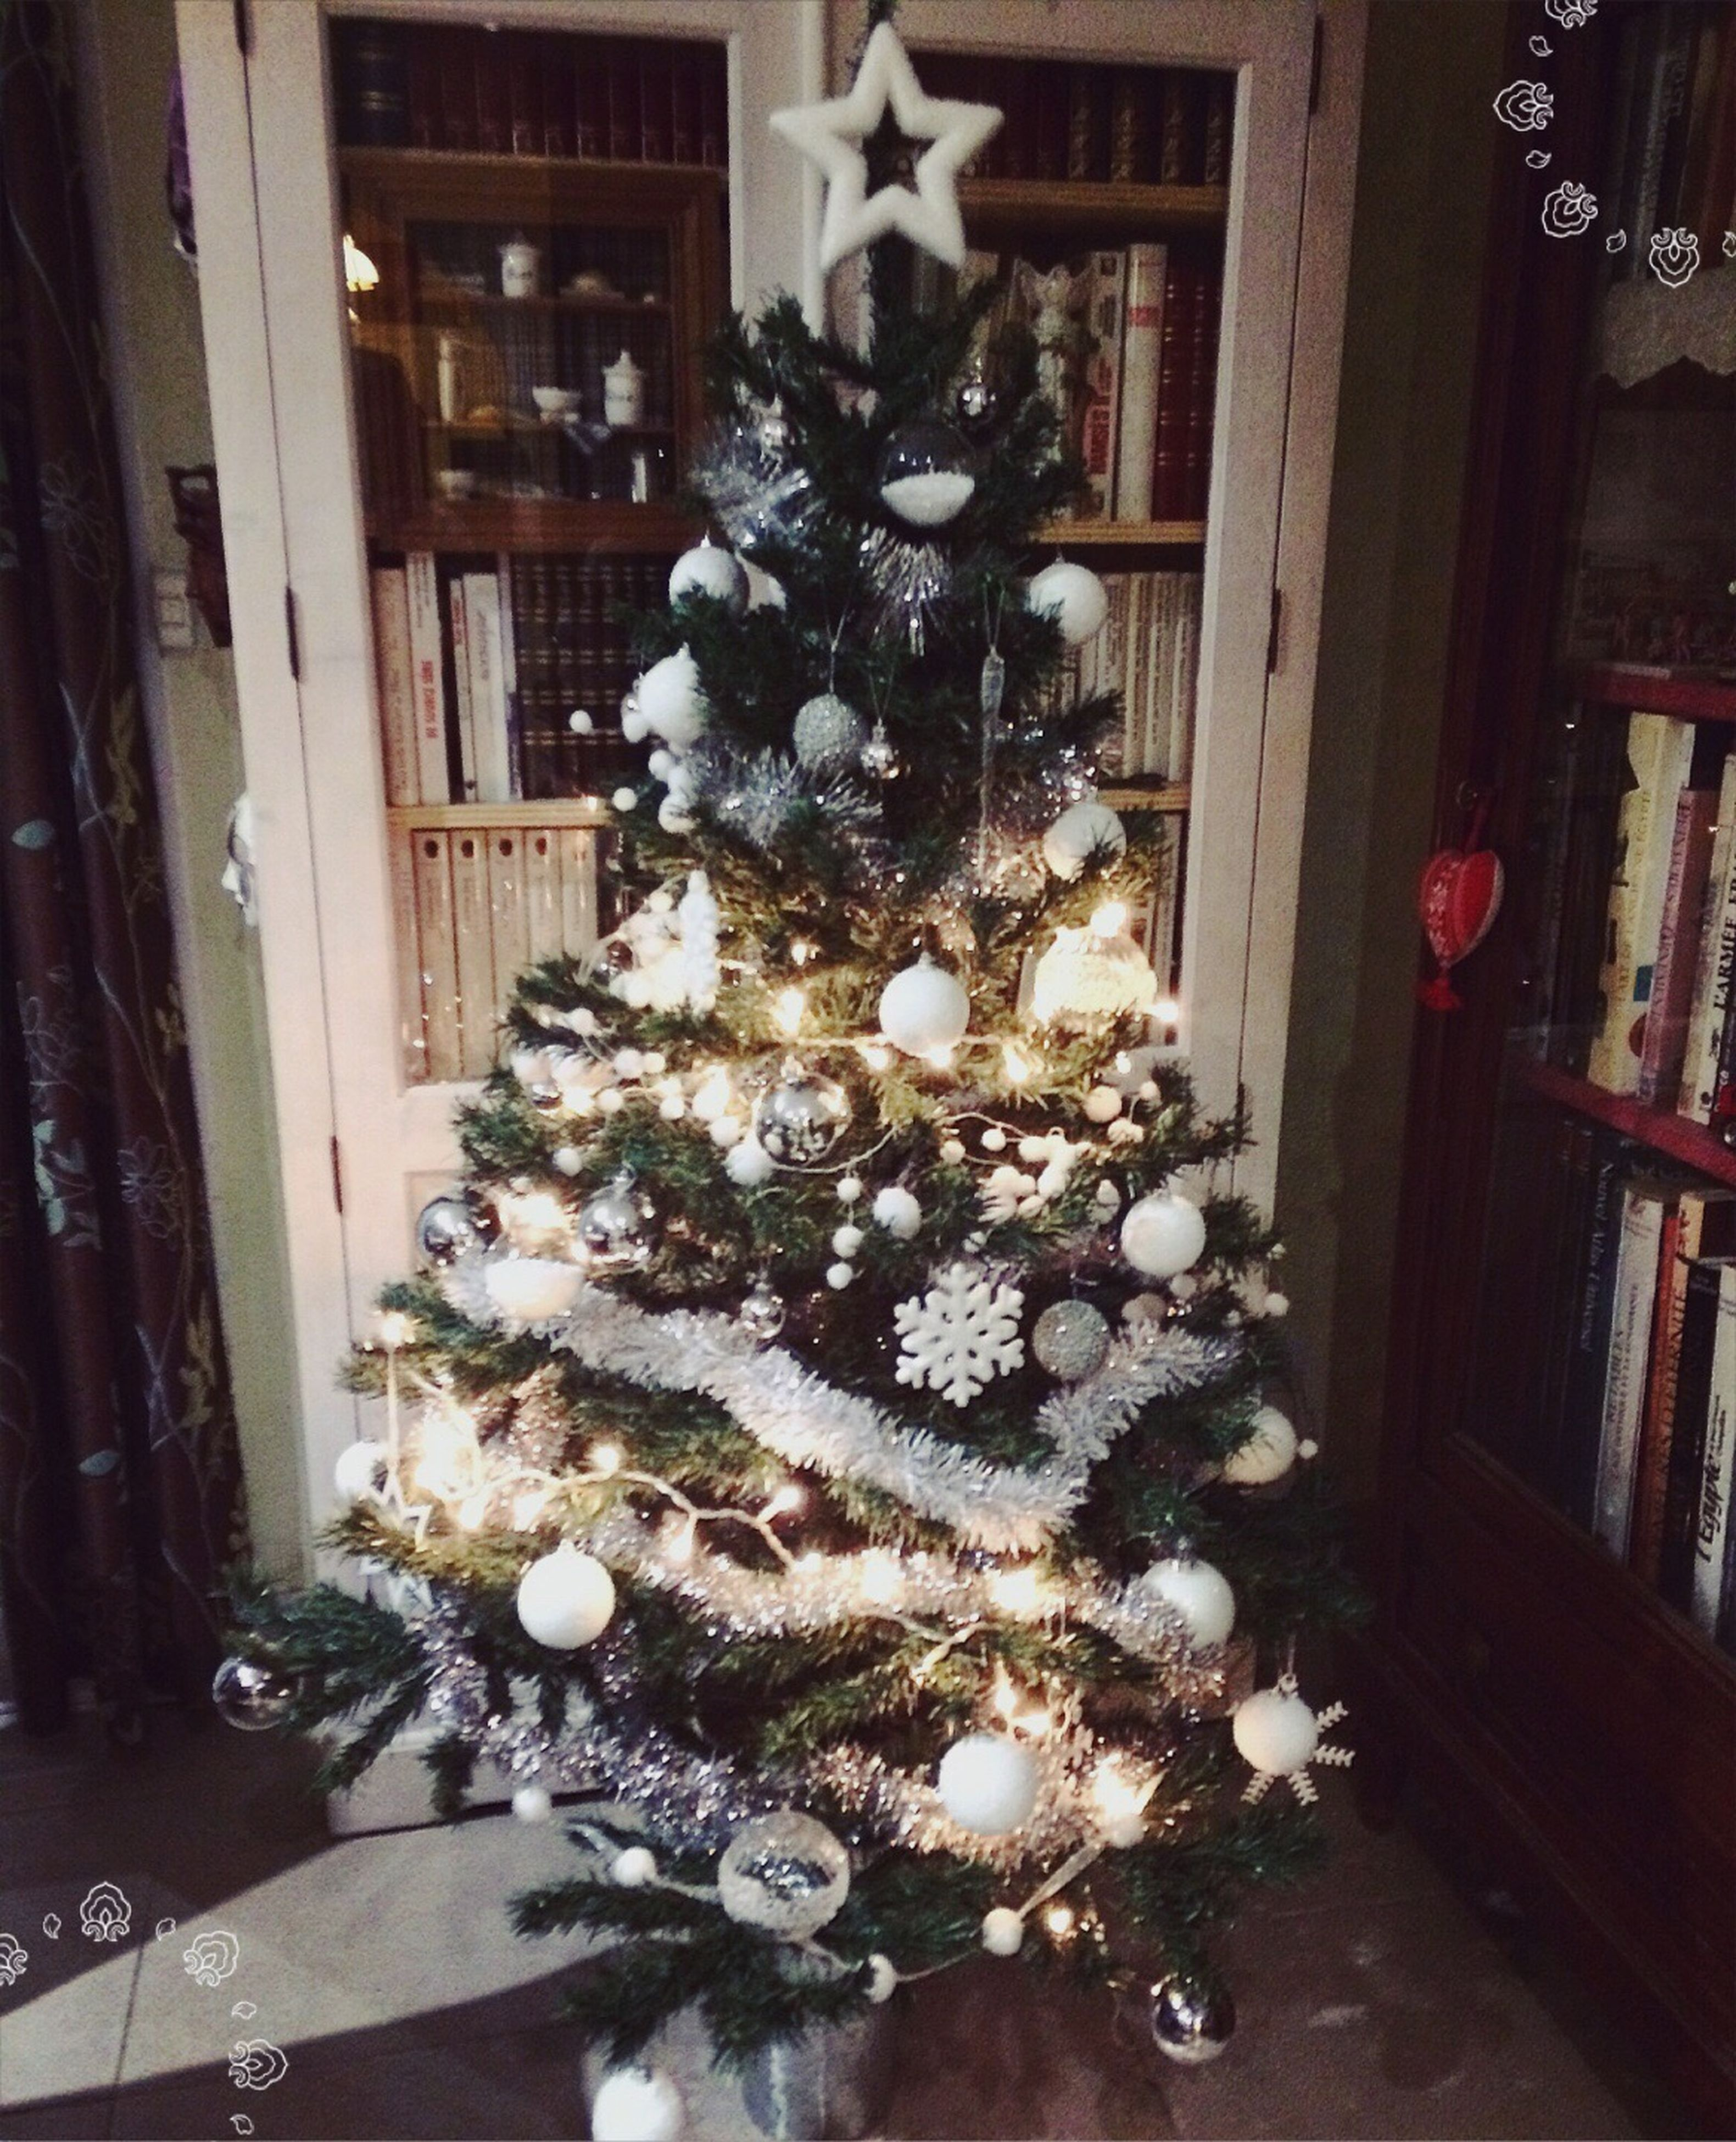 flower, decoration, christmas, fragility, architecture, freshness, built structure, vase, celebration, christmas tree, indoors, bunch of flowers, building exterior, christmas decoration, petal, growth, decor, table, potted plant, bouquet